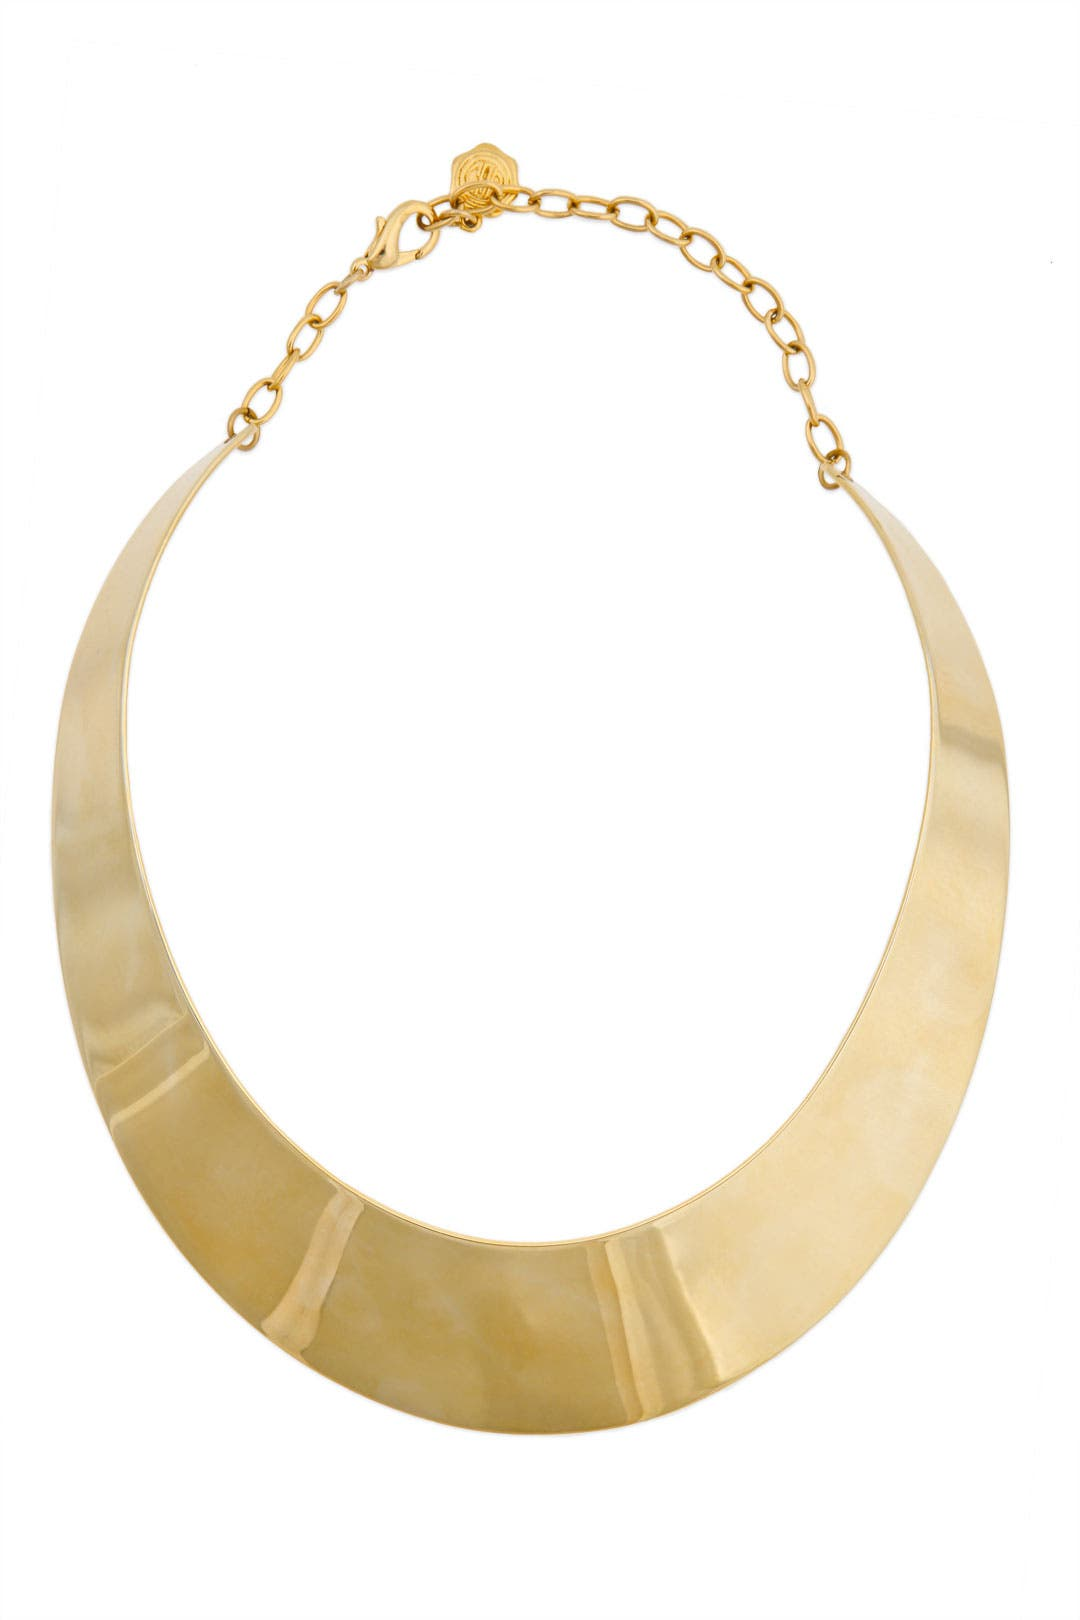 Upper Nile Necklace by RJ Graziano